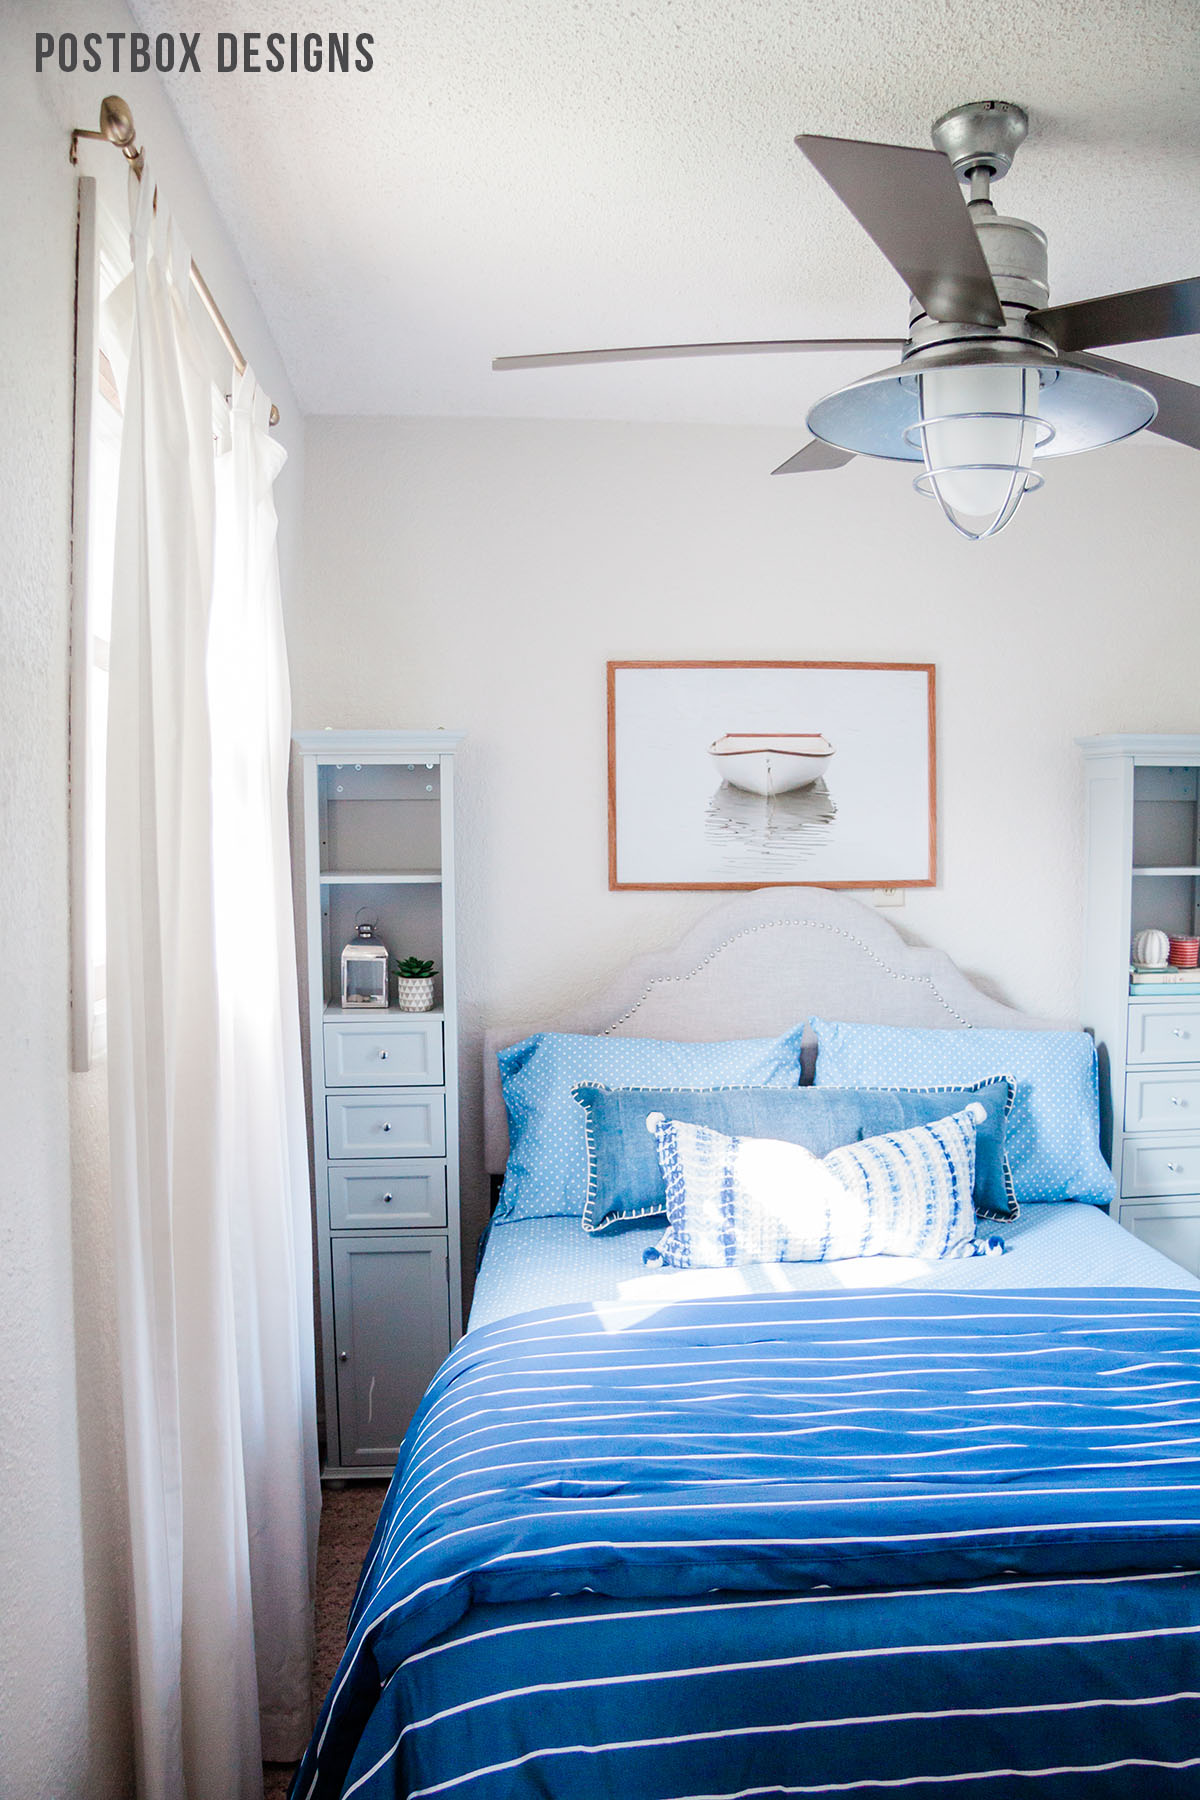 Peek Into My Own Lake House Bedroom Makeover! - Postbox Designs